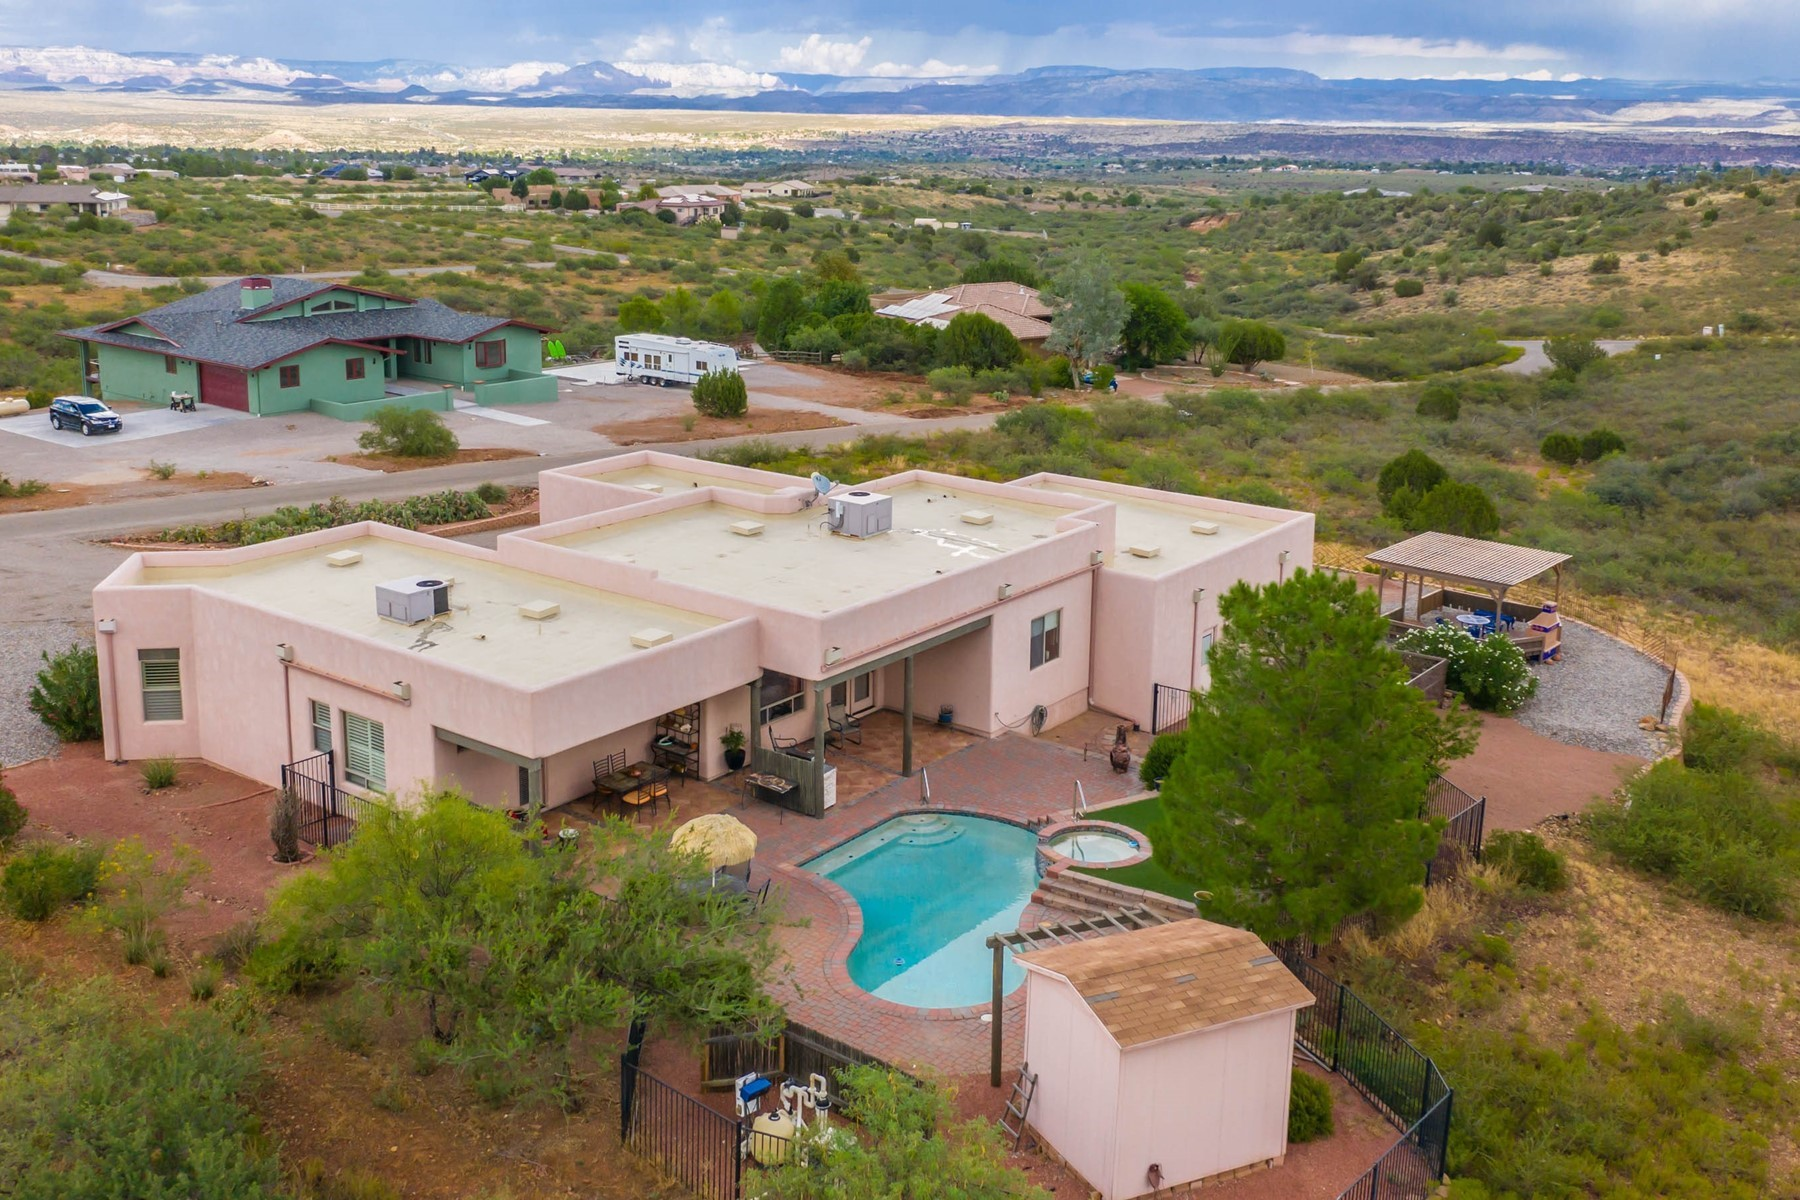 Single Family Homes for Sale at Mingus Foothills 795 E Las Conchas Drive Cottonwood, Arizona 86326 United States